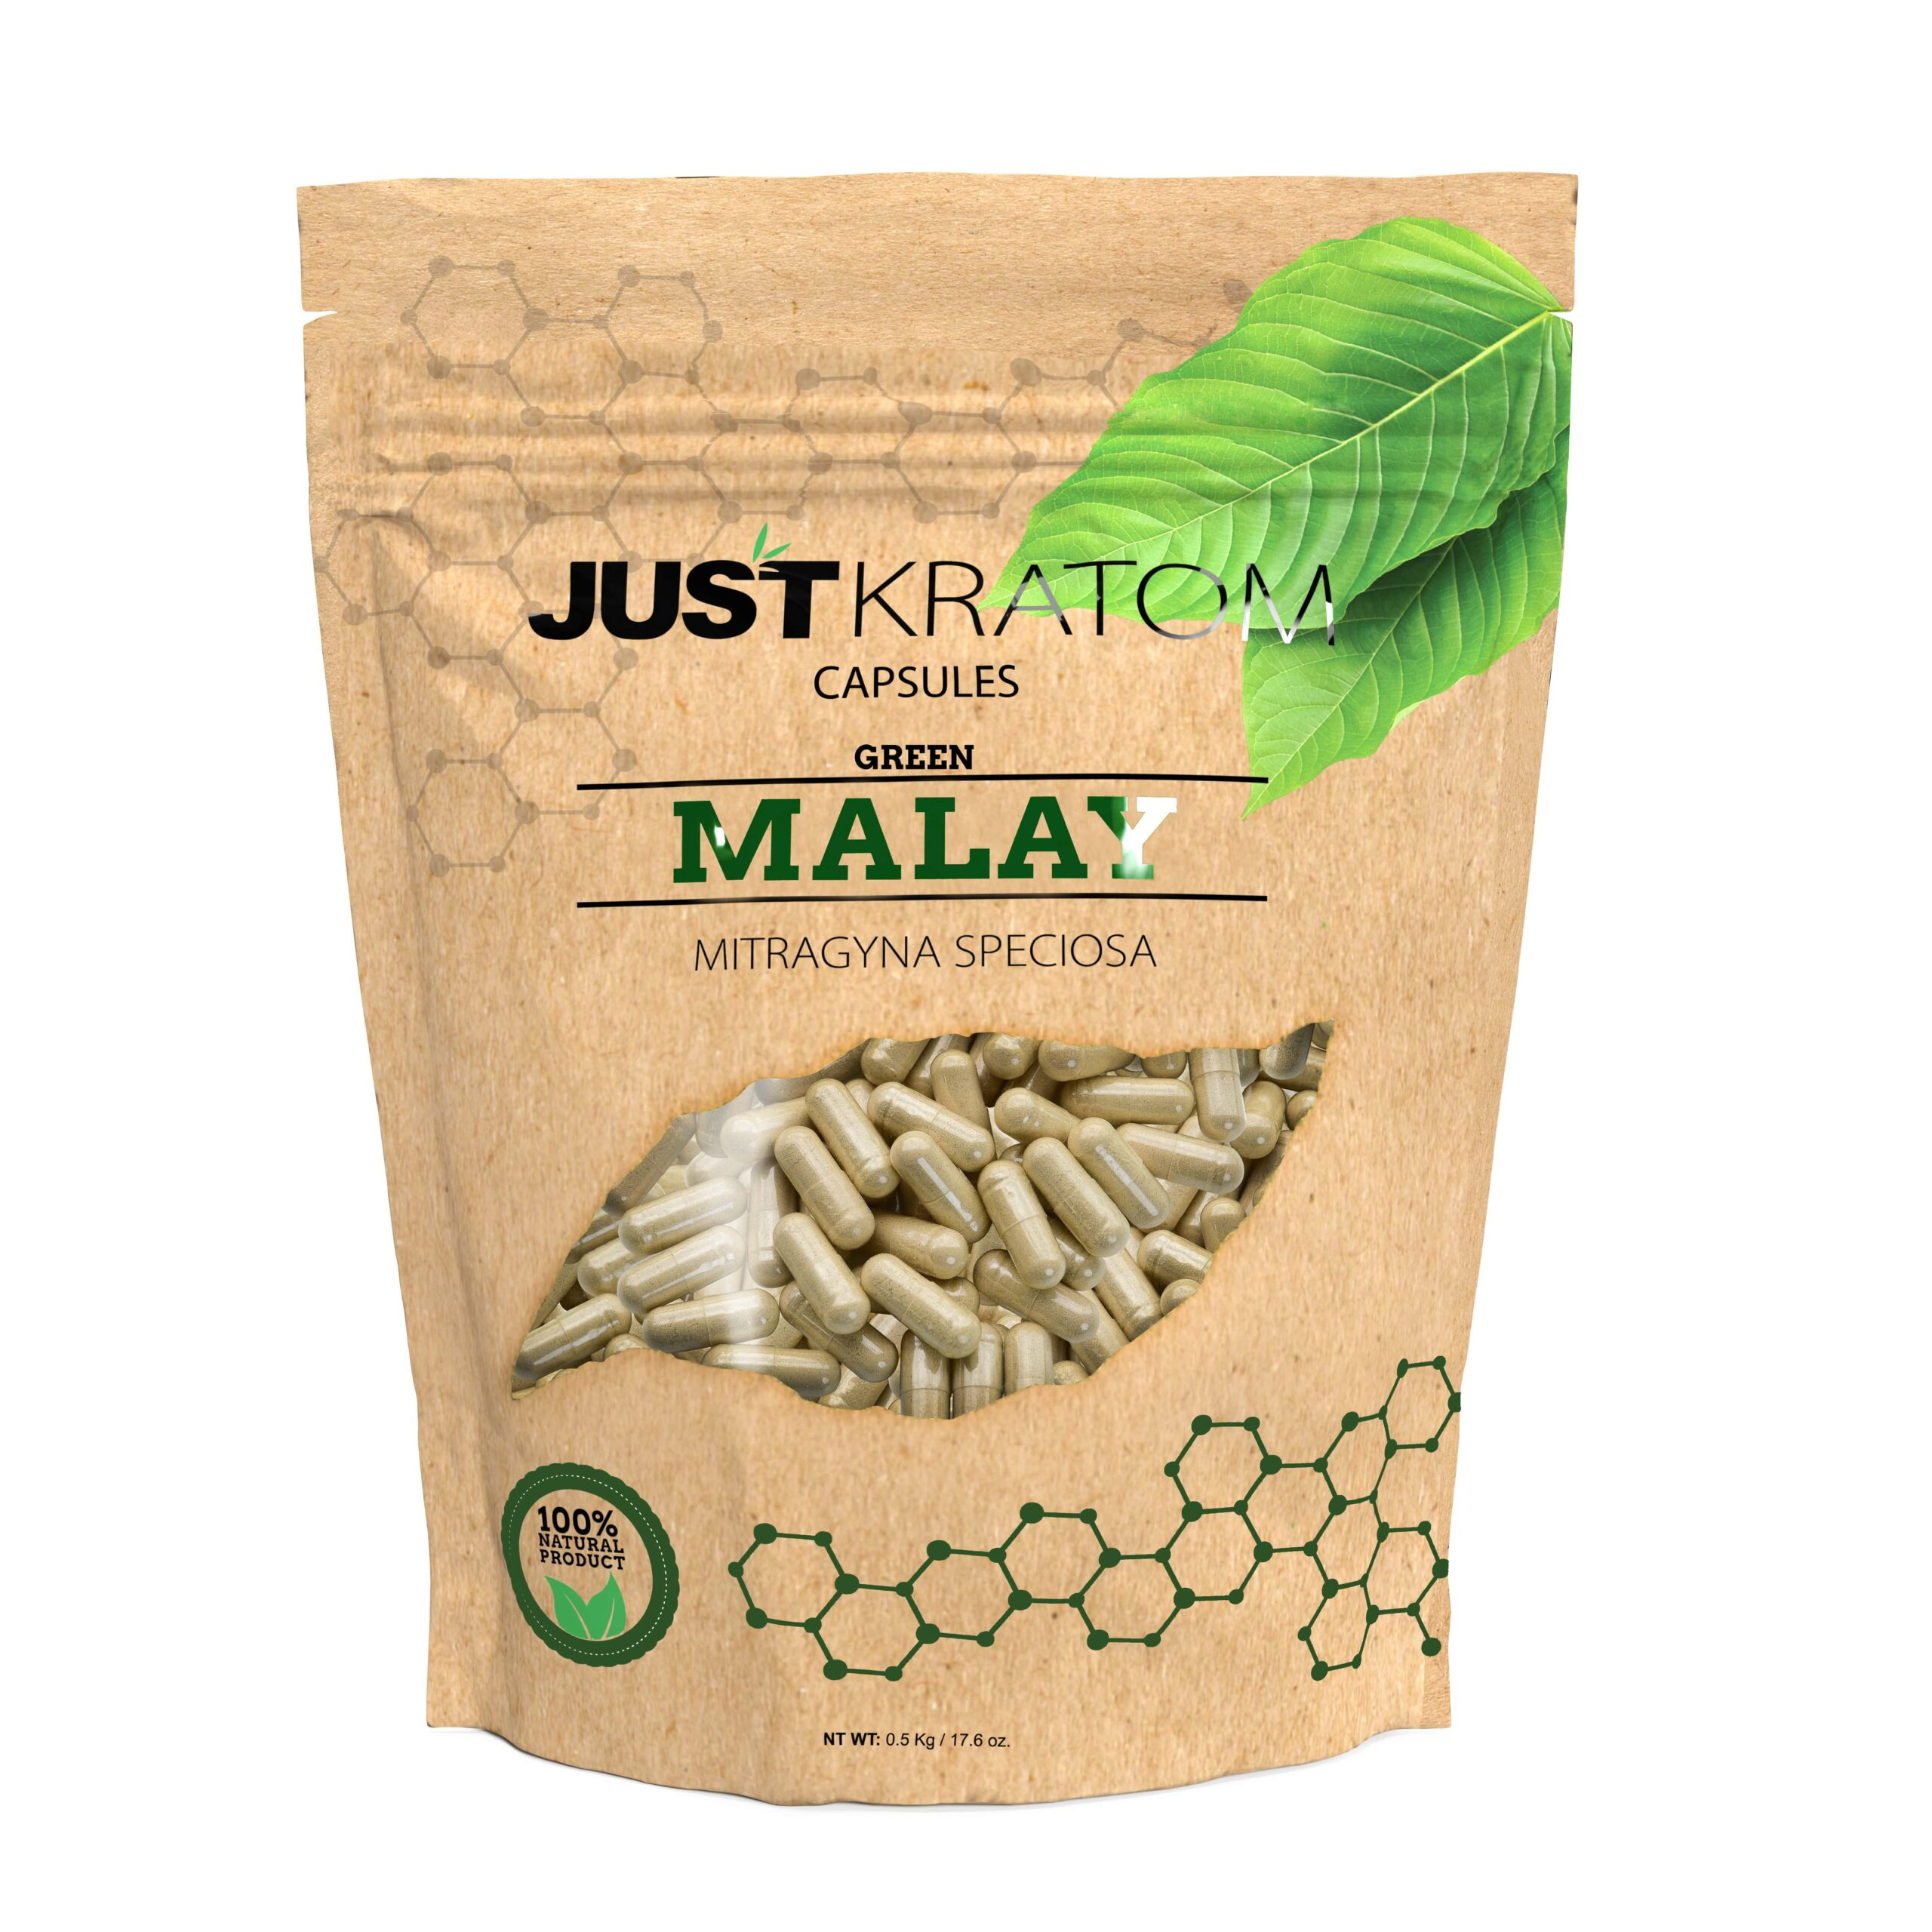 How Is Kratom Used